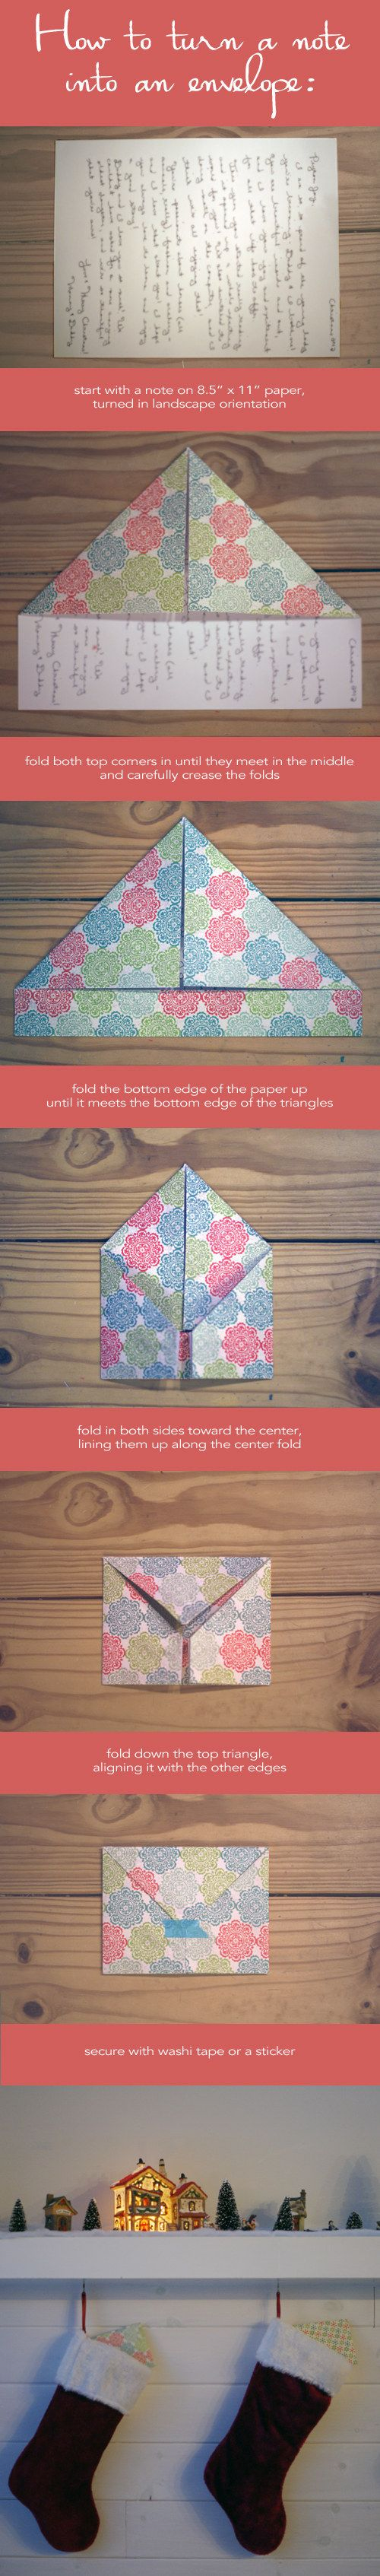 Envelopes Note And How To Fold On Pinterest